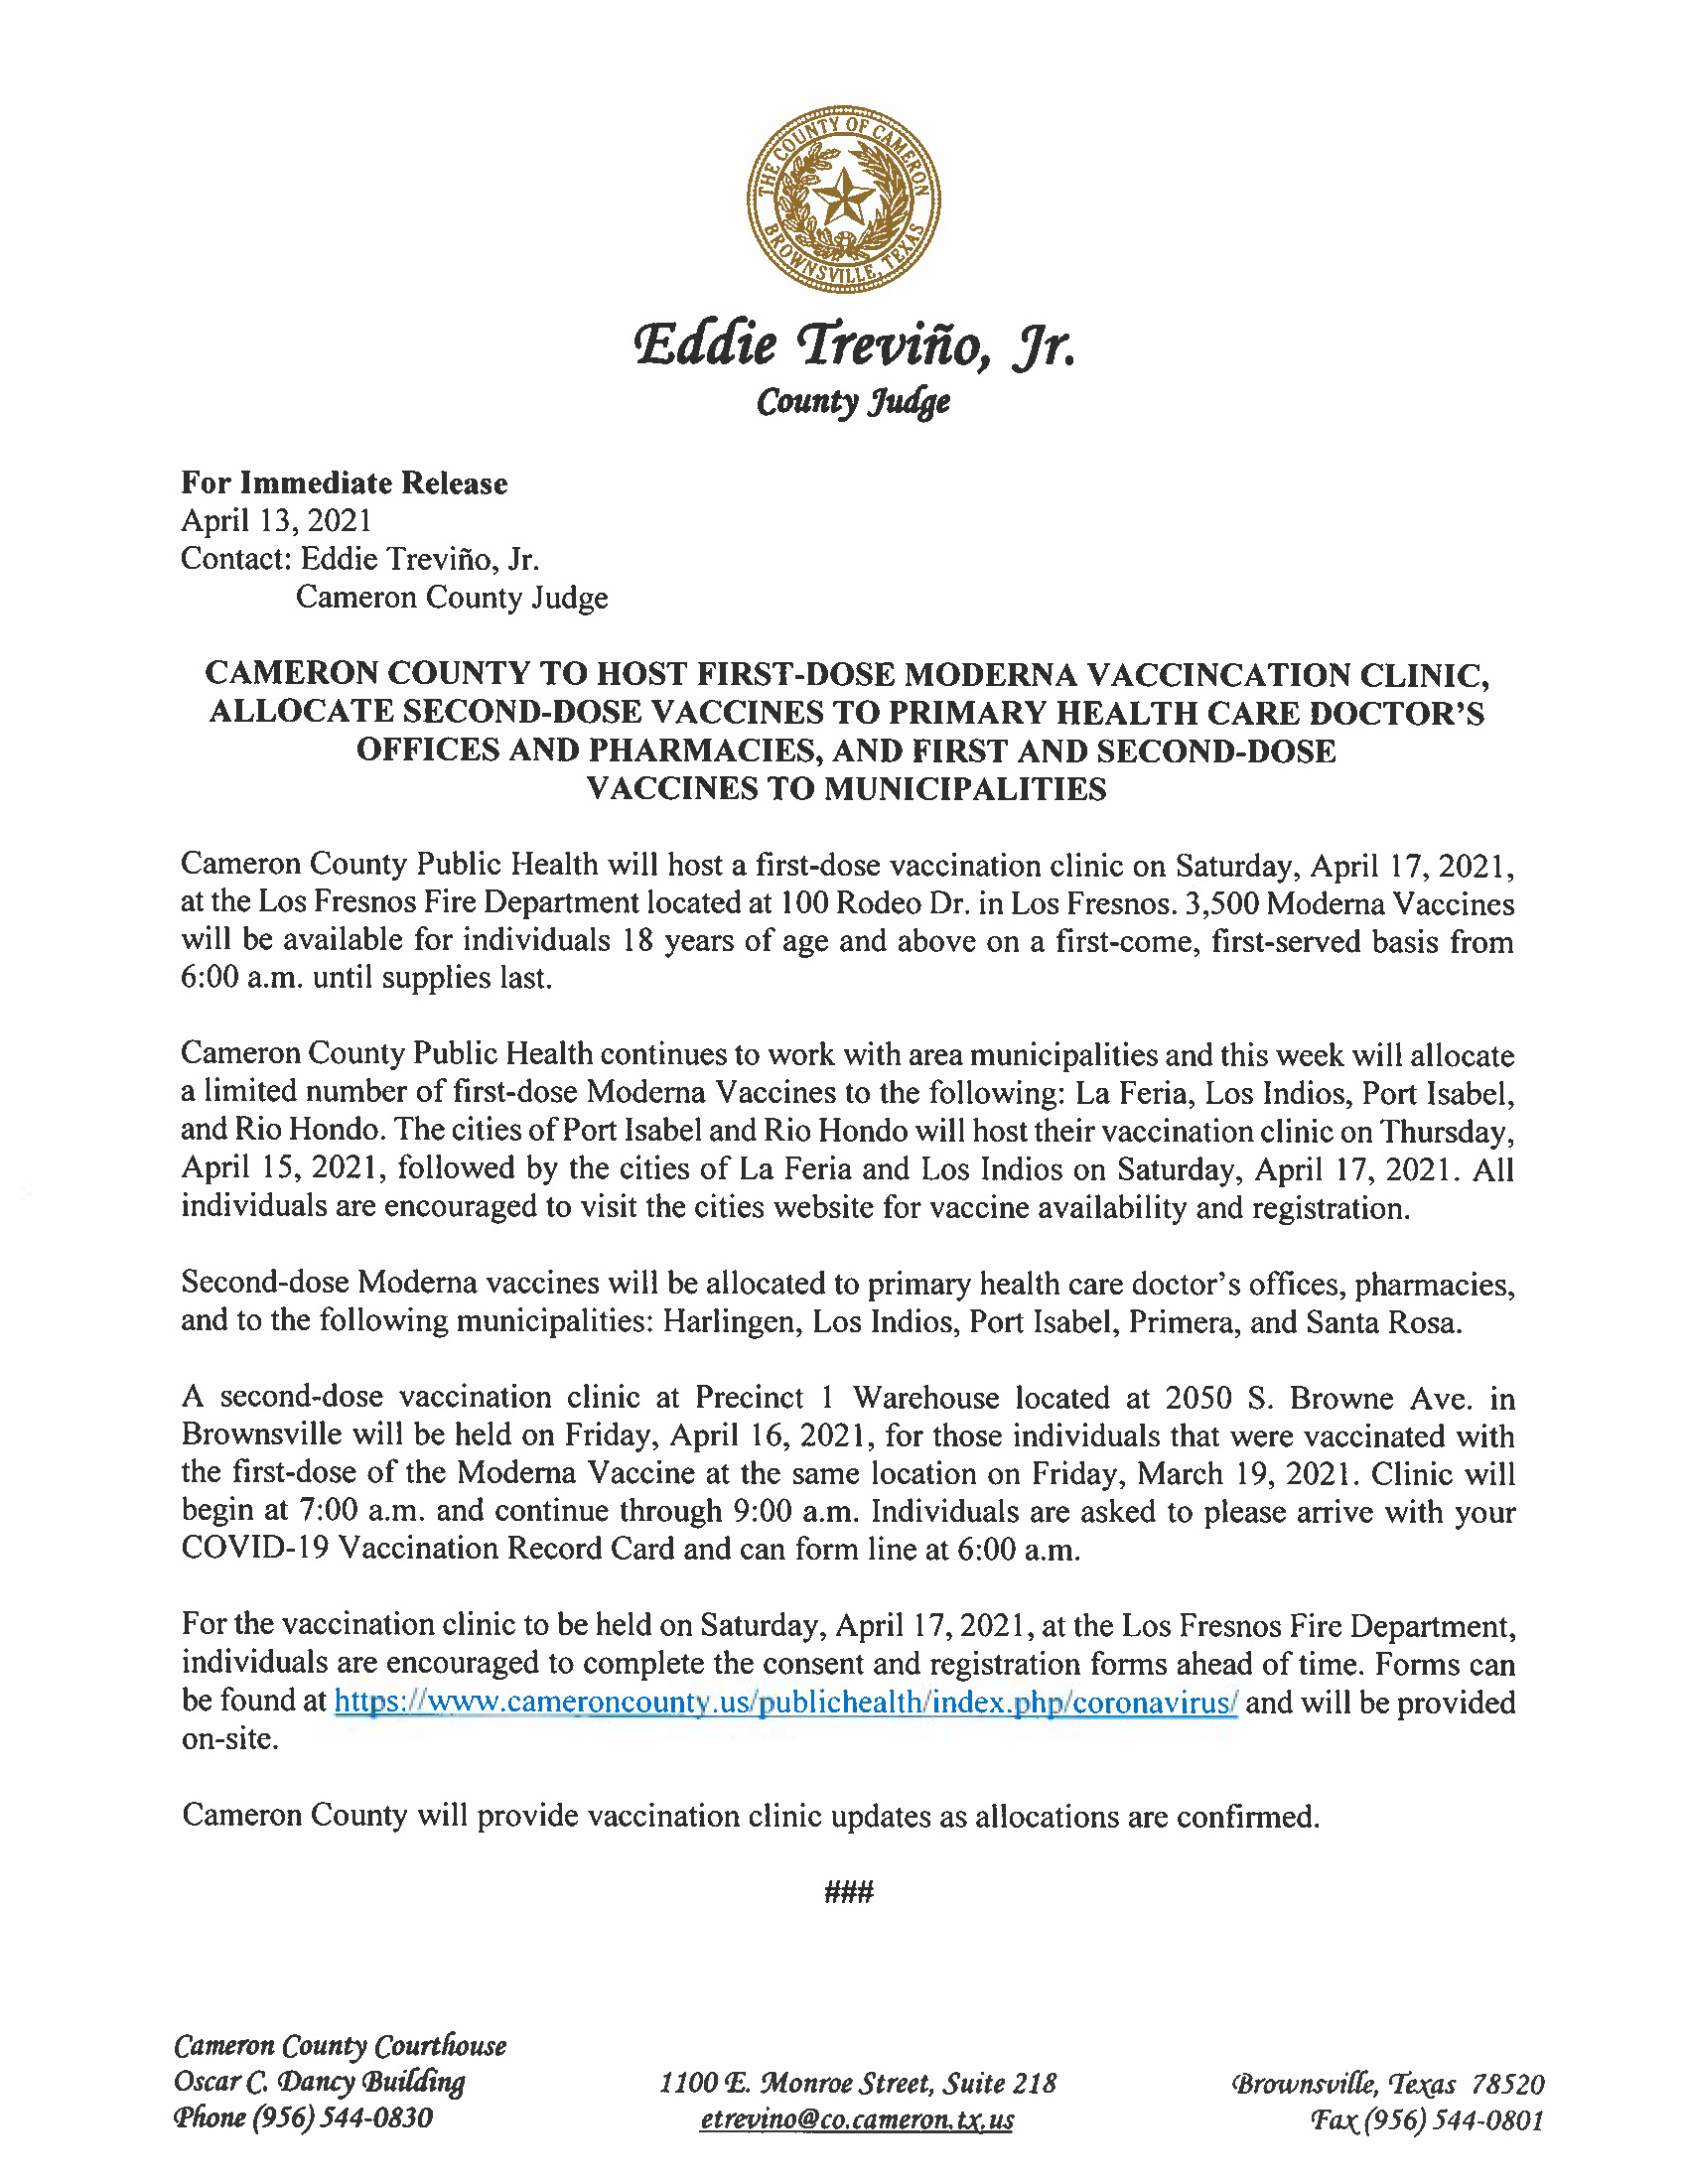 4.13.21 Cameron County To Host First Dose Clinic And Allocate First And Second Doses